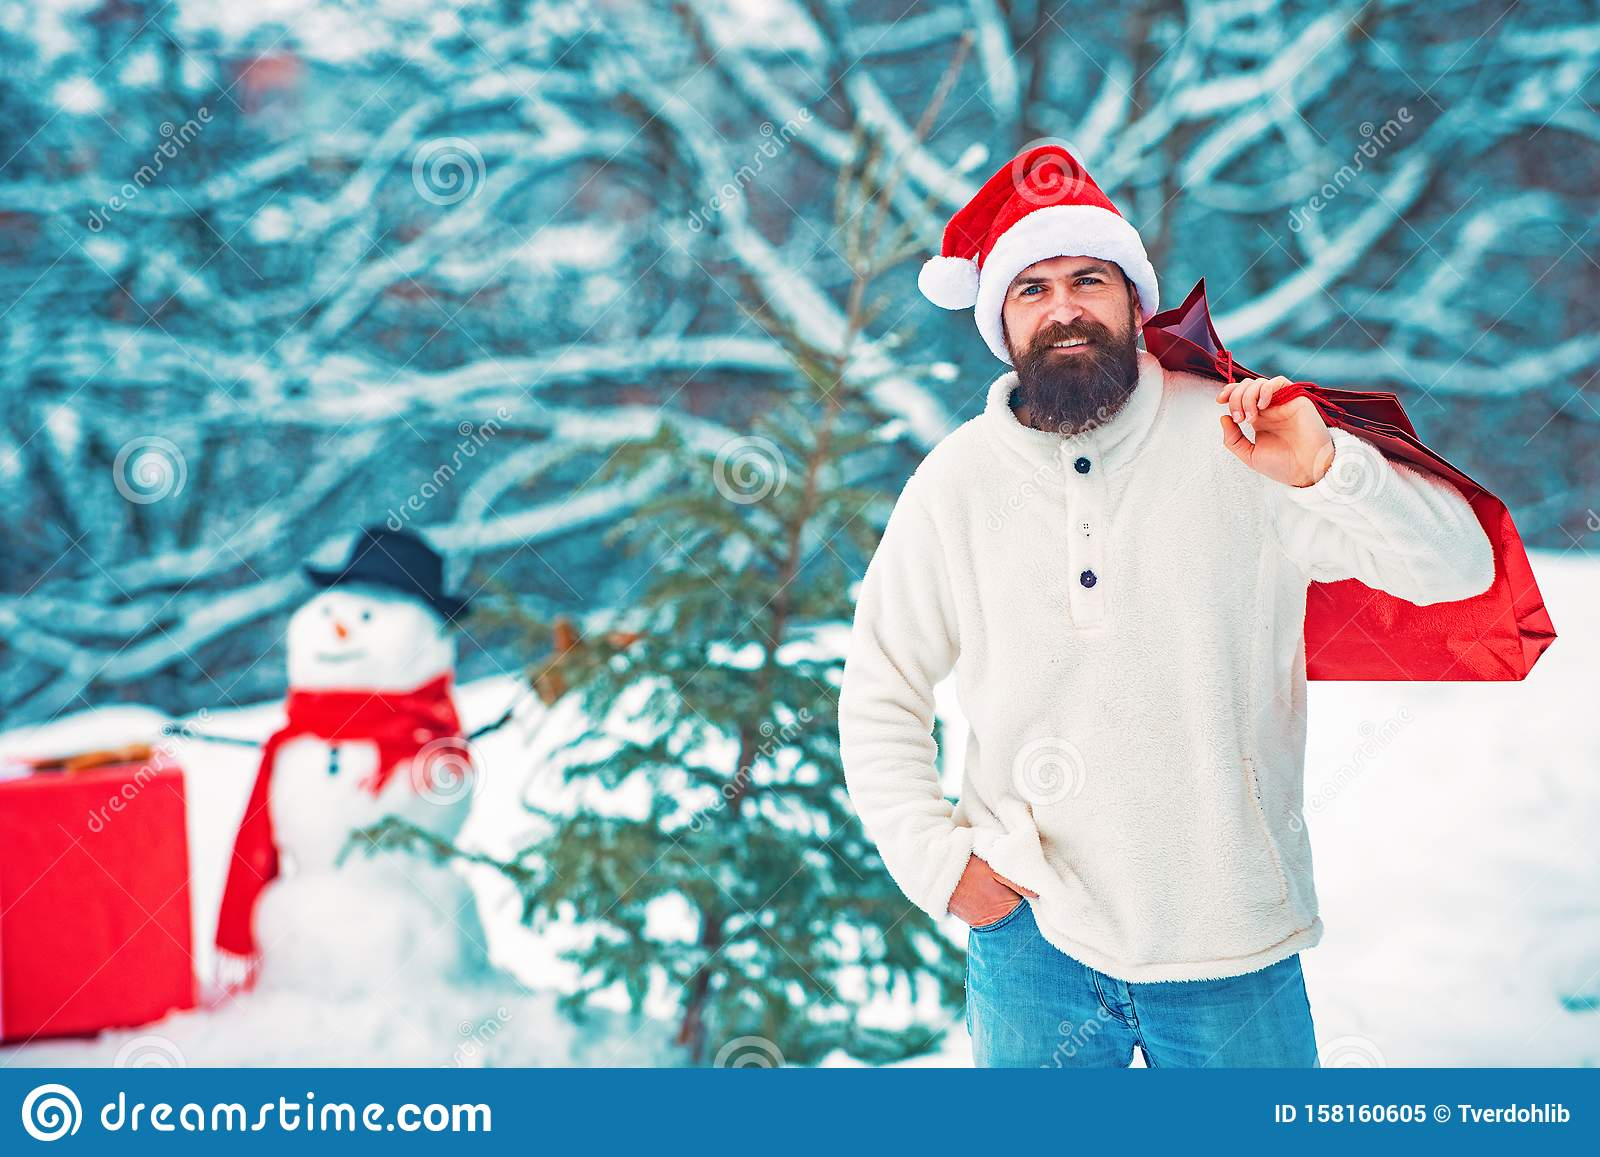 Delivery gifts. Cute little snowman and bearded man with shopping bag. Hipster santa claus. Funny snowman with shopping